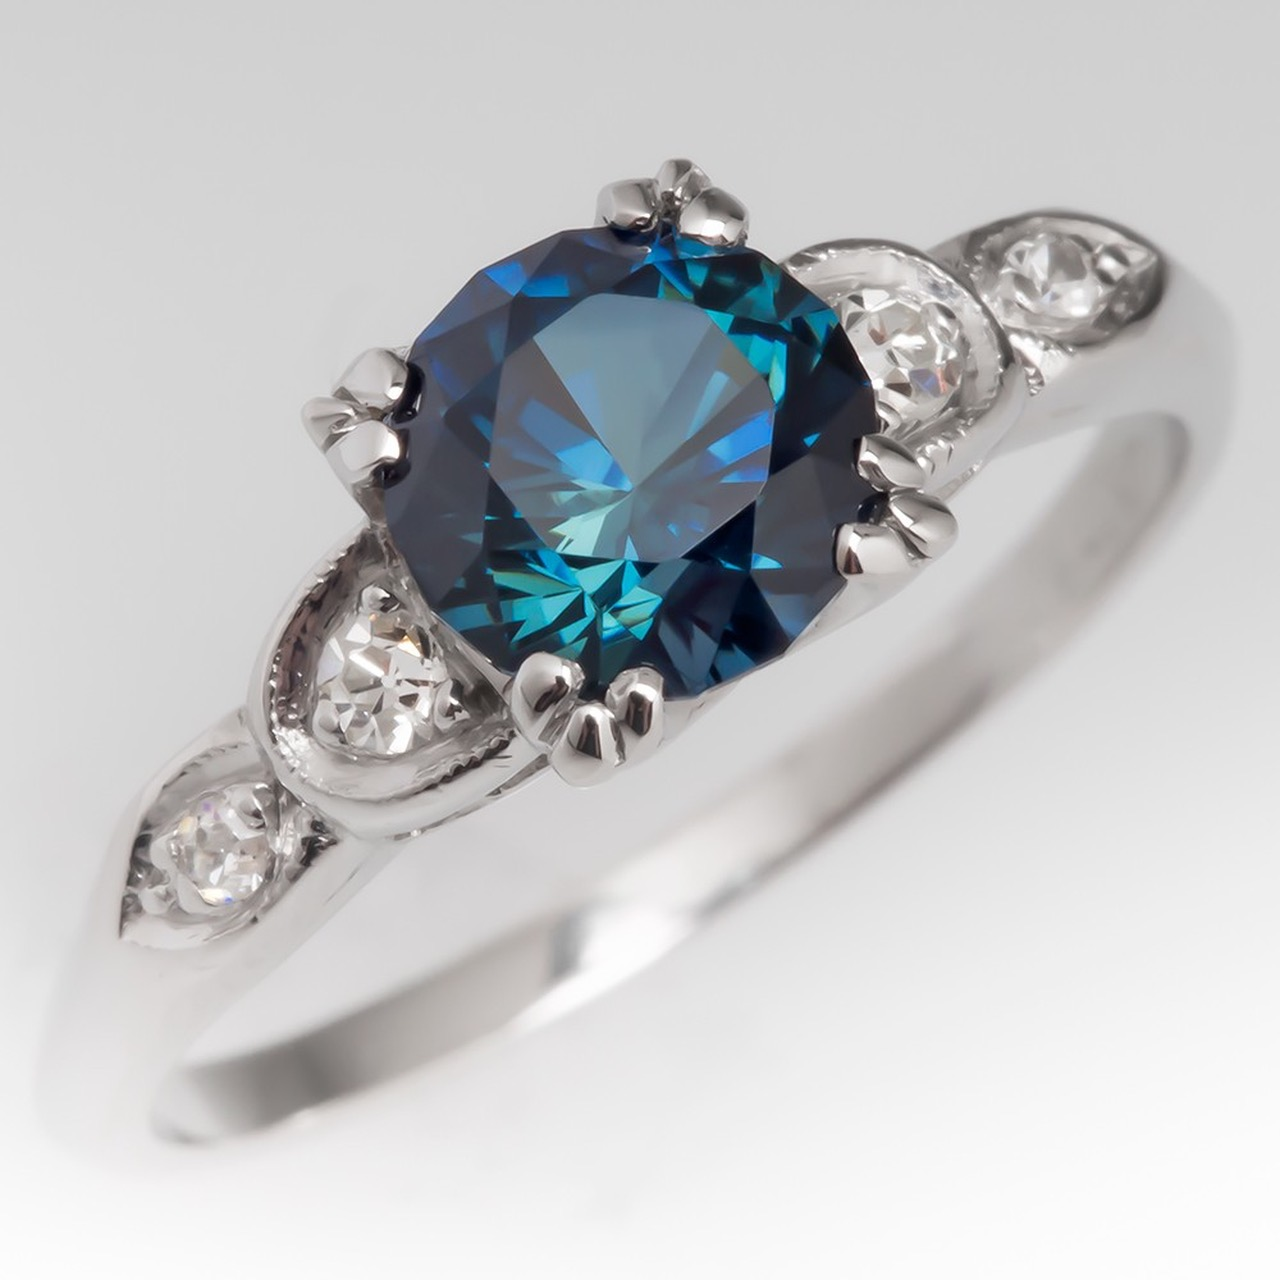 Amazing ring with sapphire and diamonds